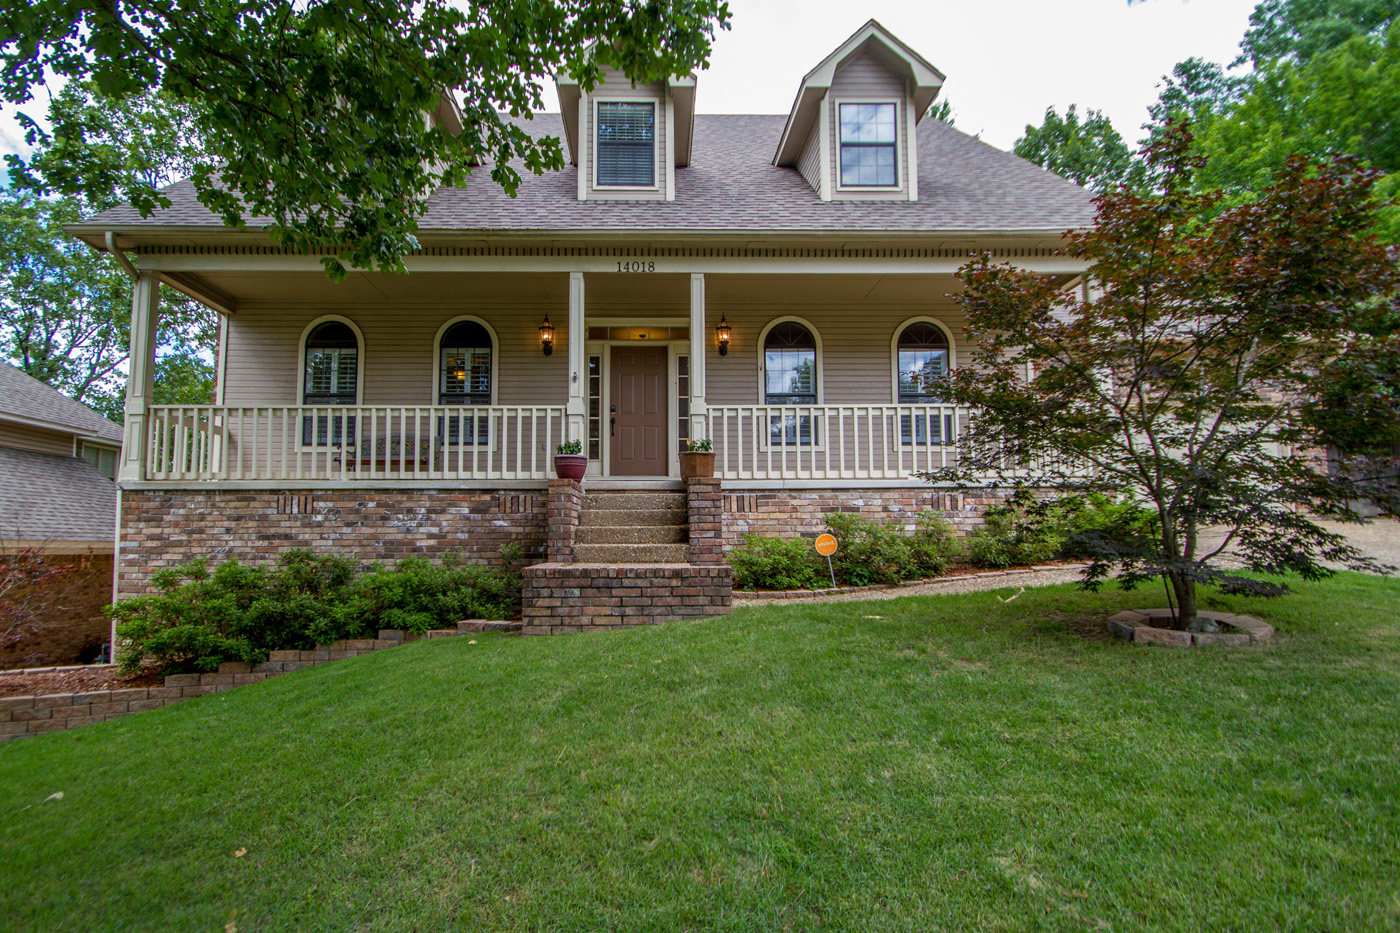 Traditional Southern Charm in St Charles